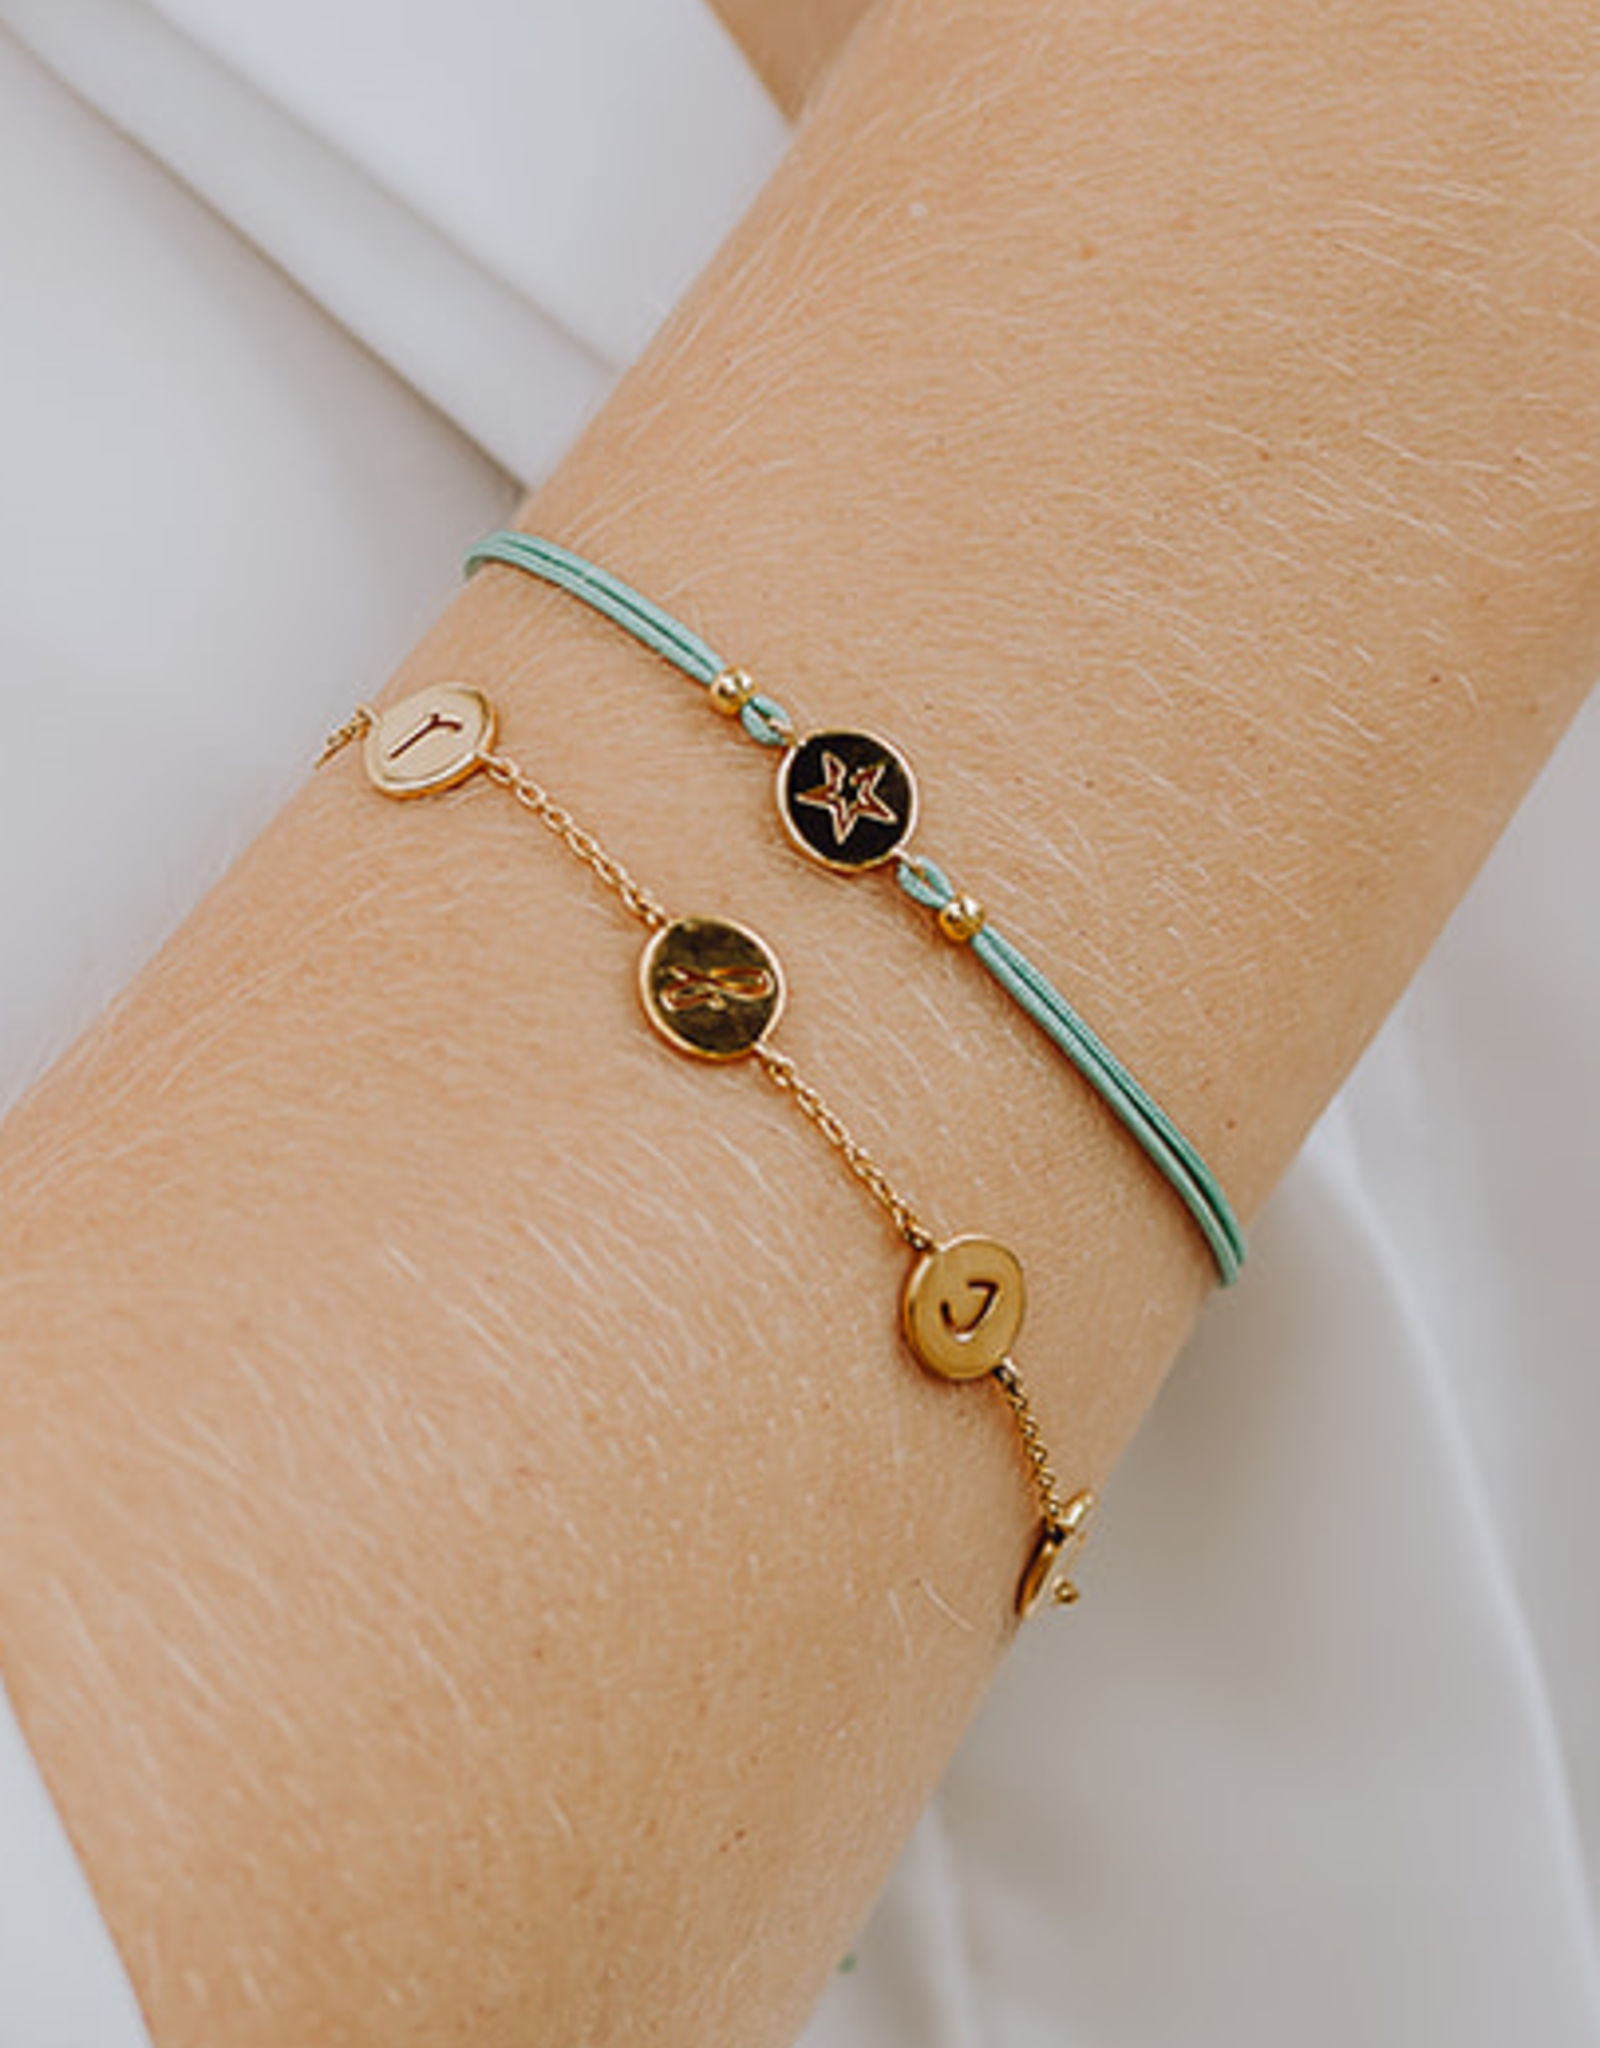 Design your bracelet with 4 charms